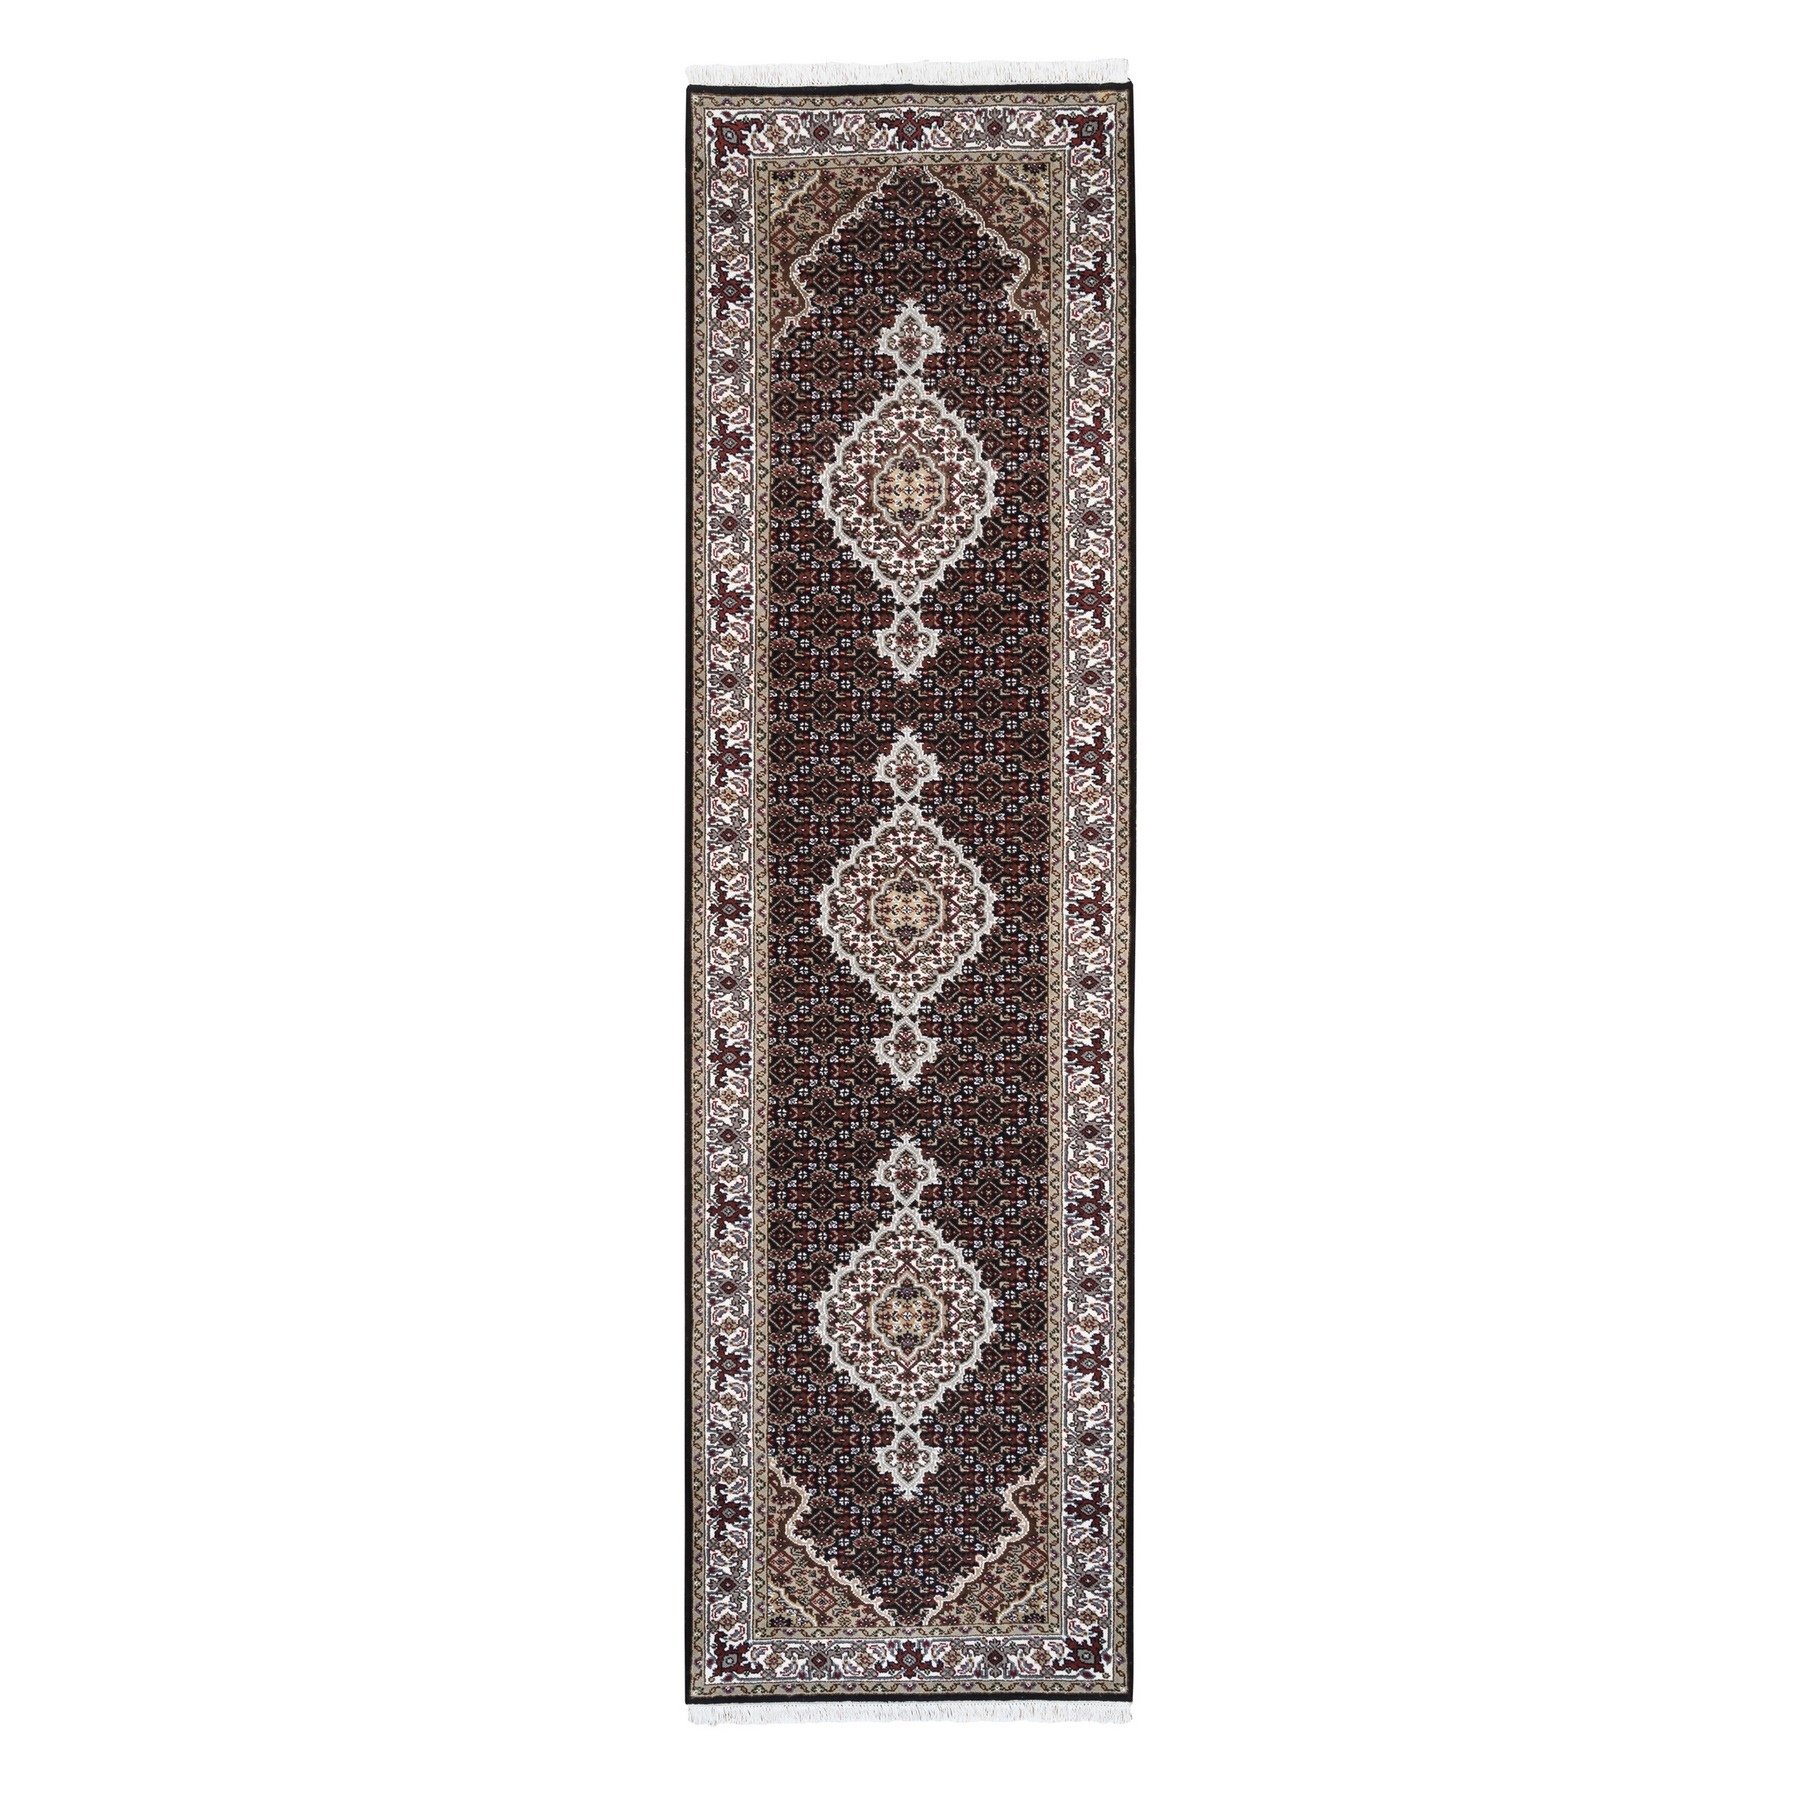 "2'7""x10'6"" Tabriz Mahi Fish Medallion Design Black Hand Woven Wool And Silk Oriental Runner Rug"